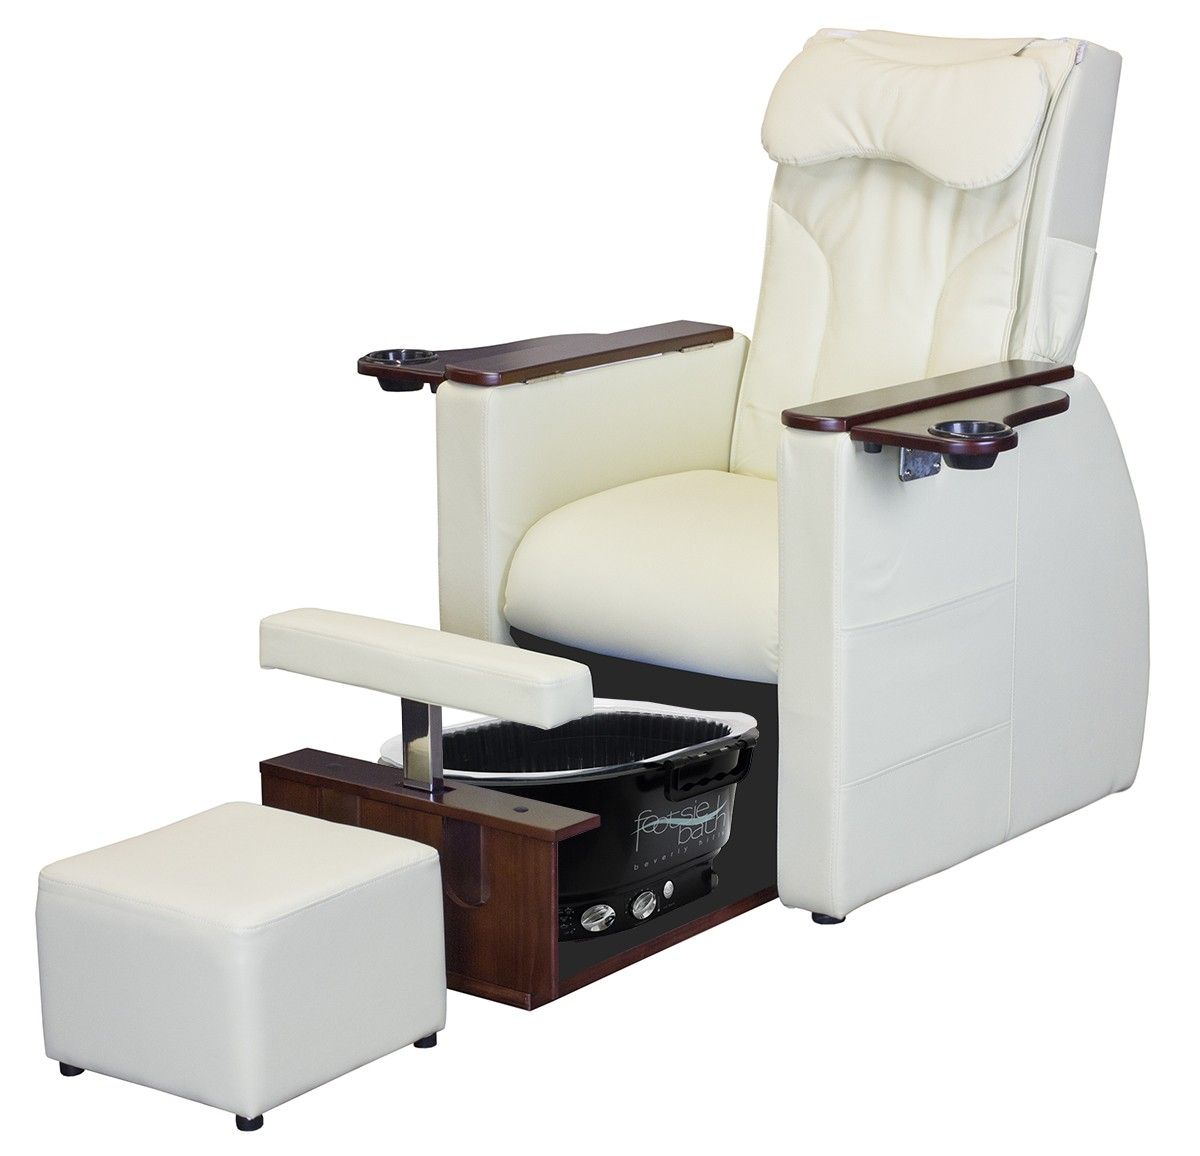 Fauteuils Relax Variance Calvin Pedicure Chair No Plumbing Pedicure Spa Salons De